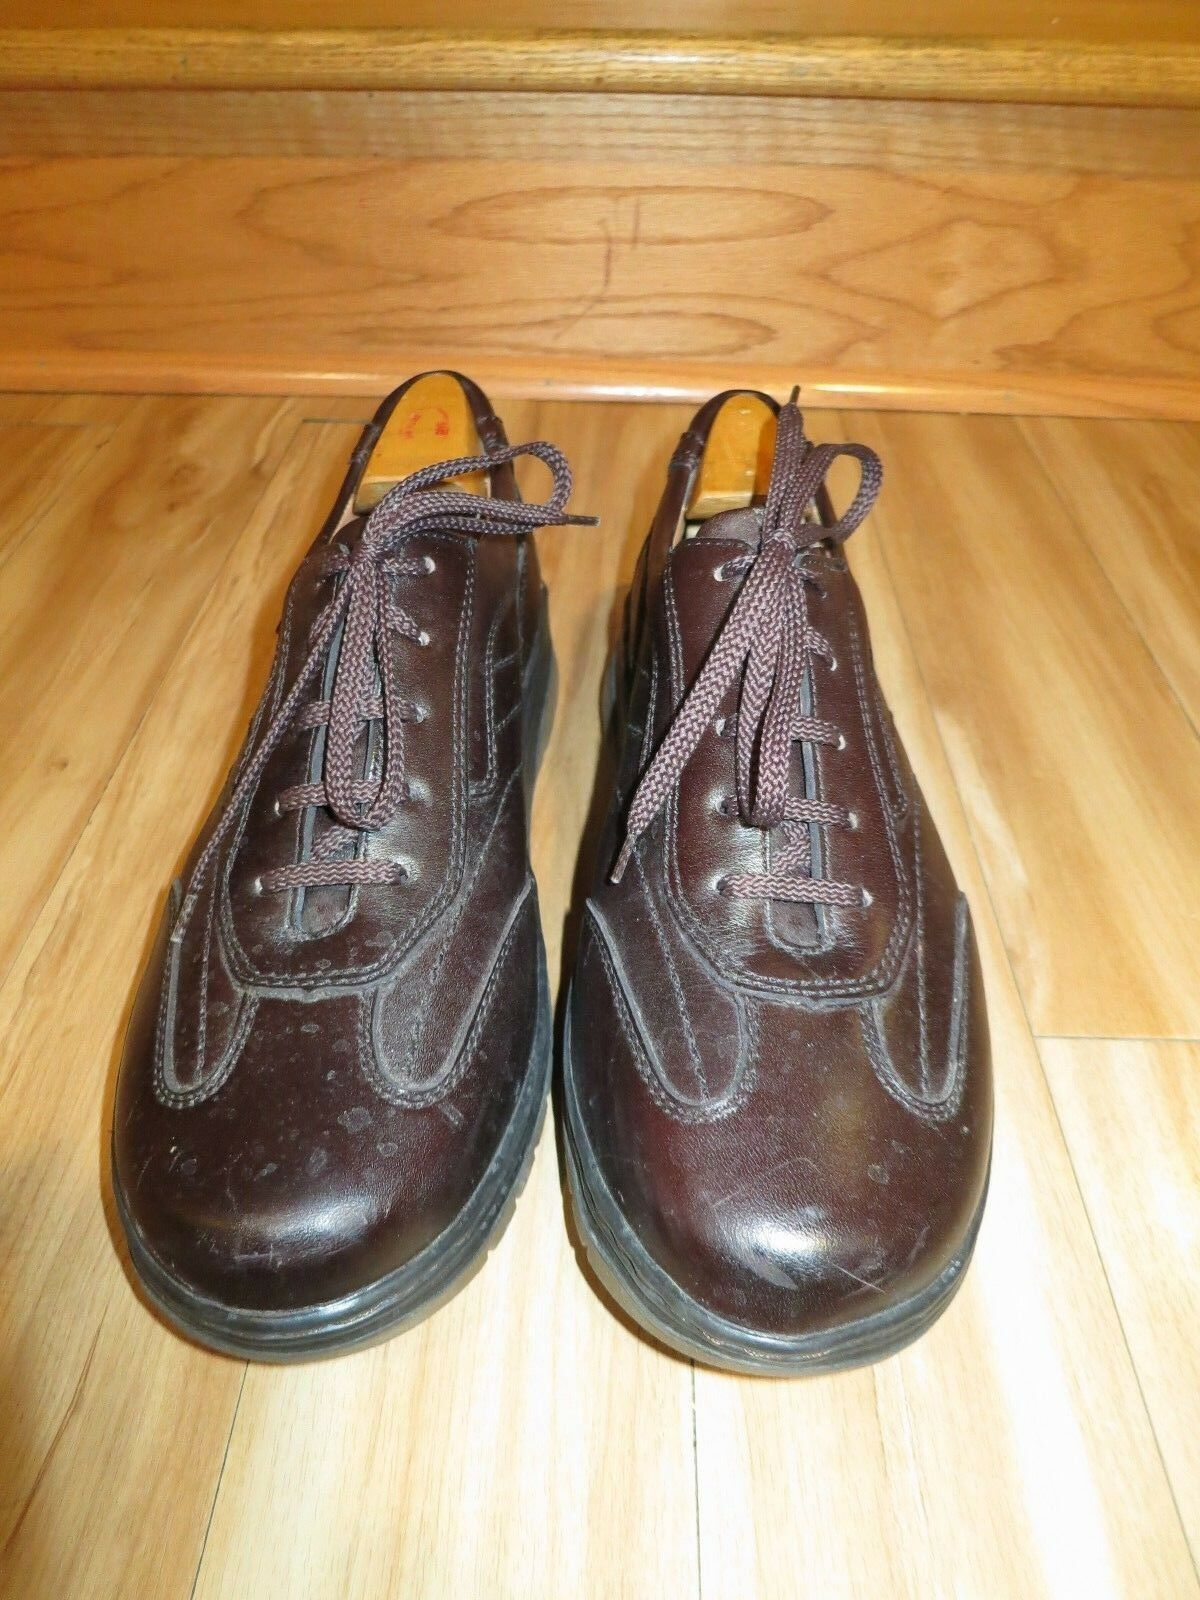 Mephisto Sano US Size 9.5 Brown Pelle Walking Shoes